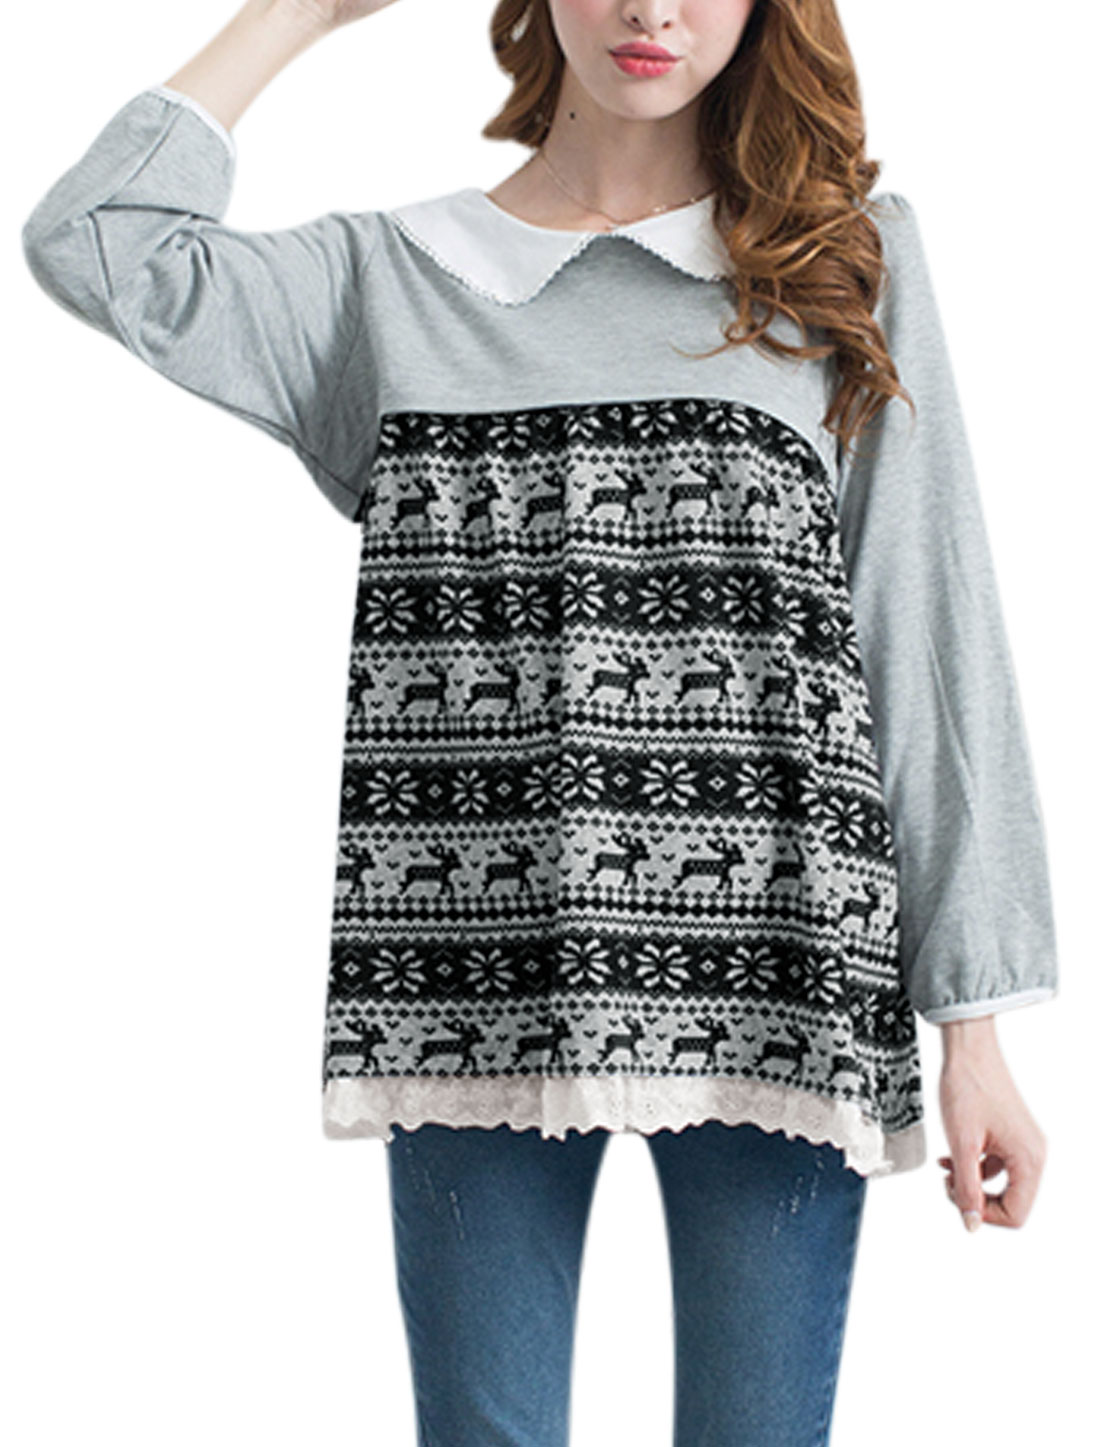 XK18 Maternity Pullover Geometric Deer Pattern Cozy Fit Top Light Gray L/S (US 6)